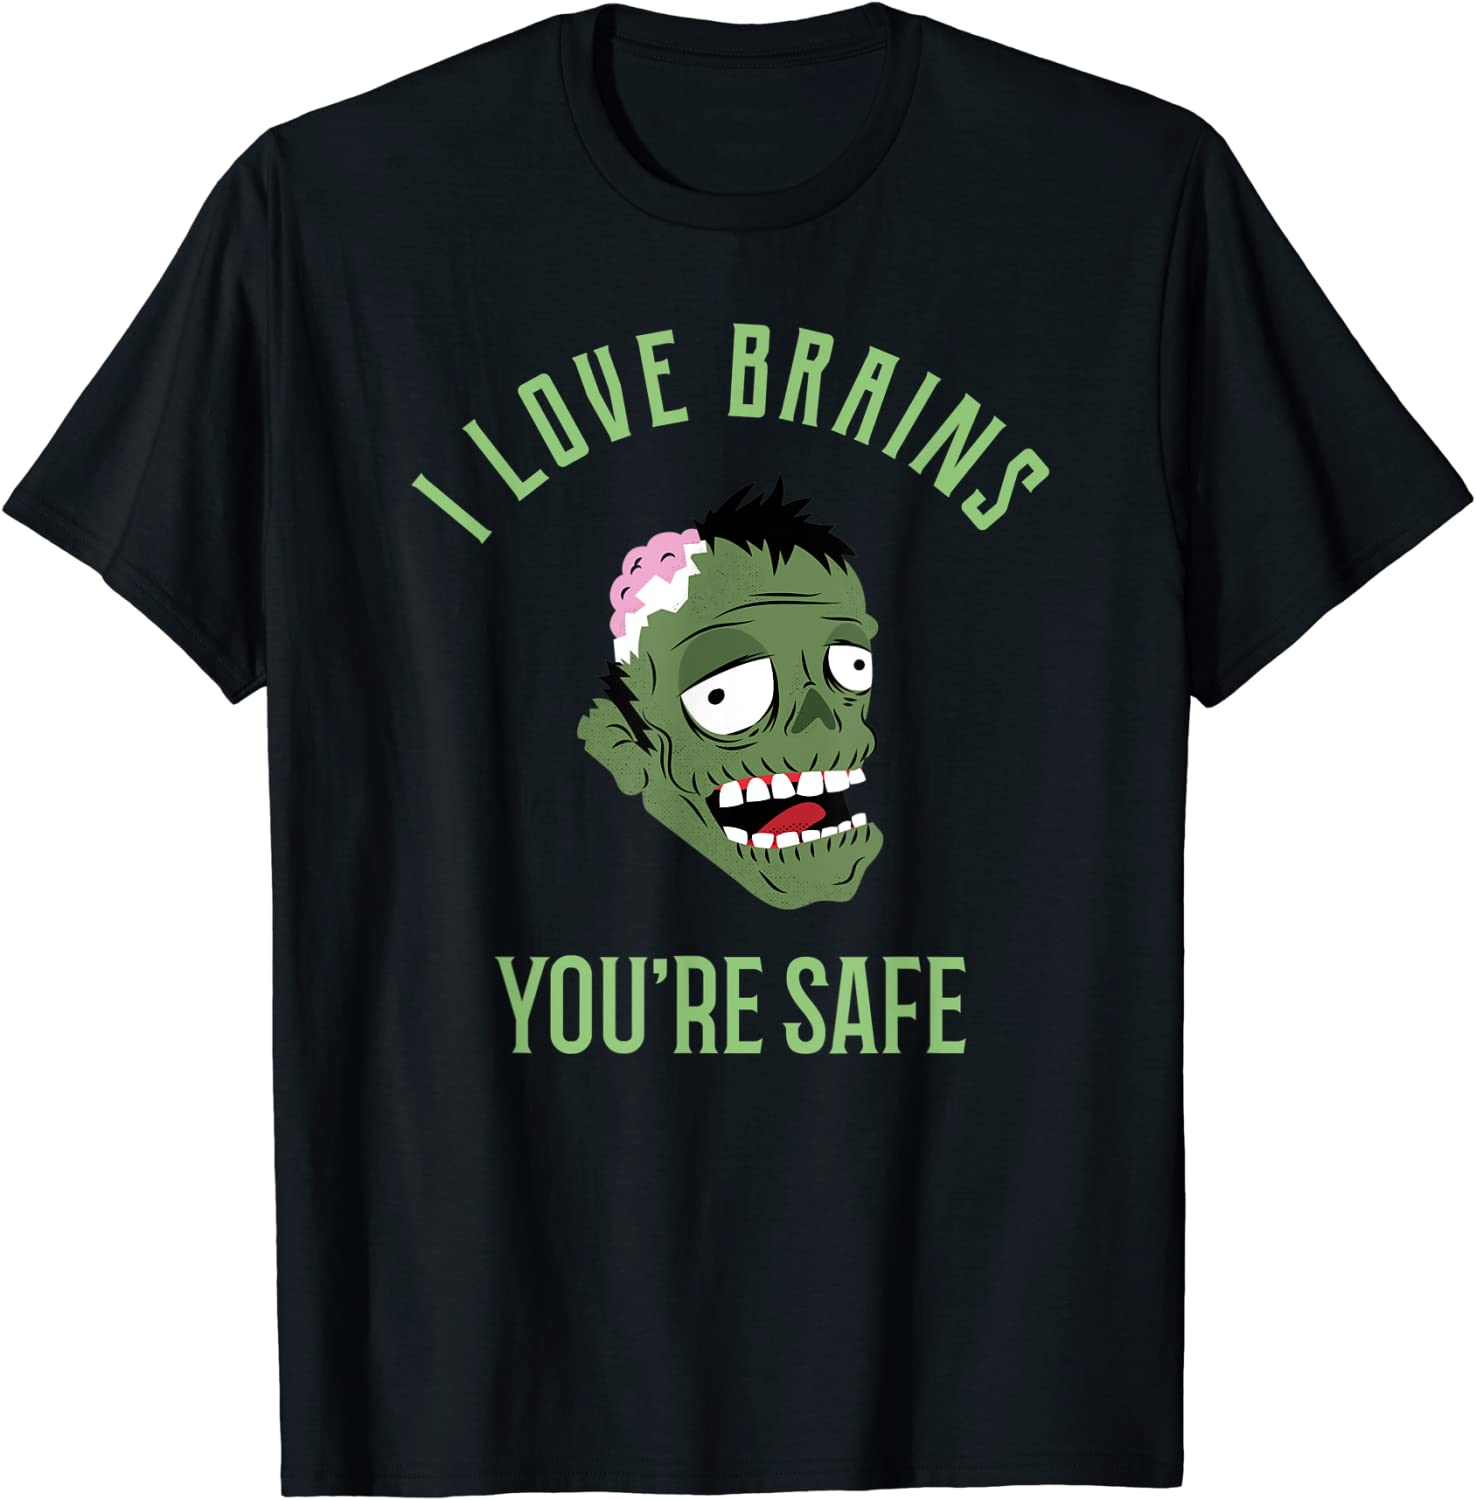 I Love Brains You're Safe Funny Zombie TShirt Halloween Gift T-Shirt